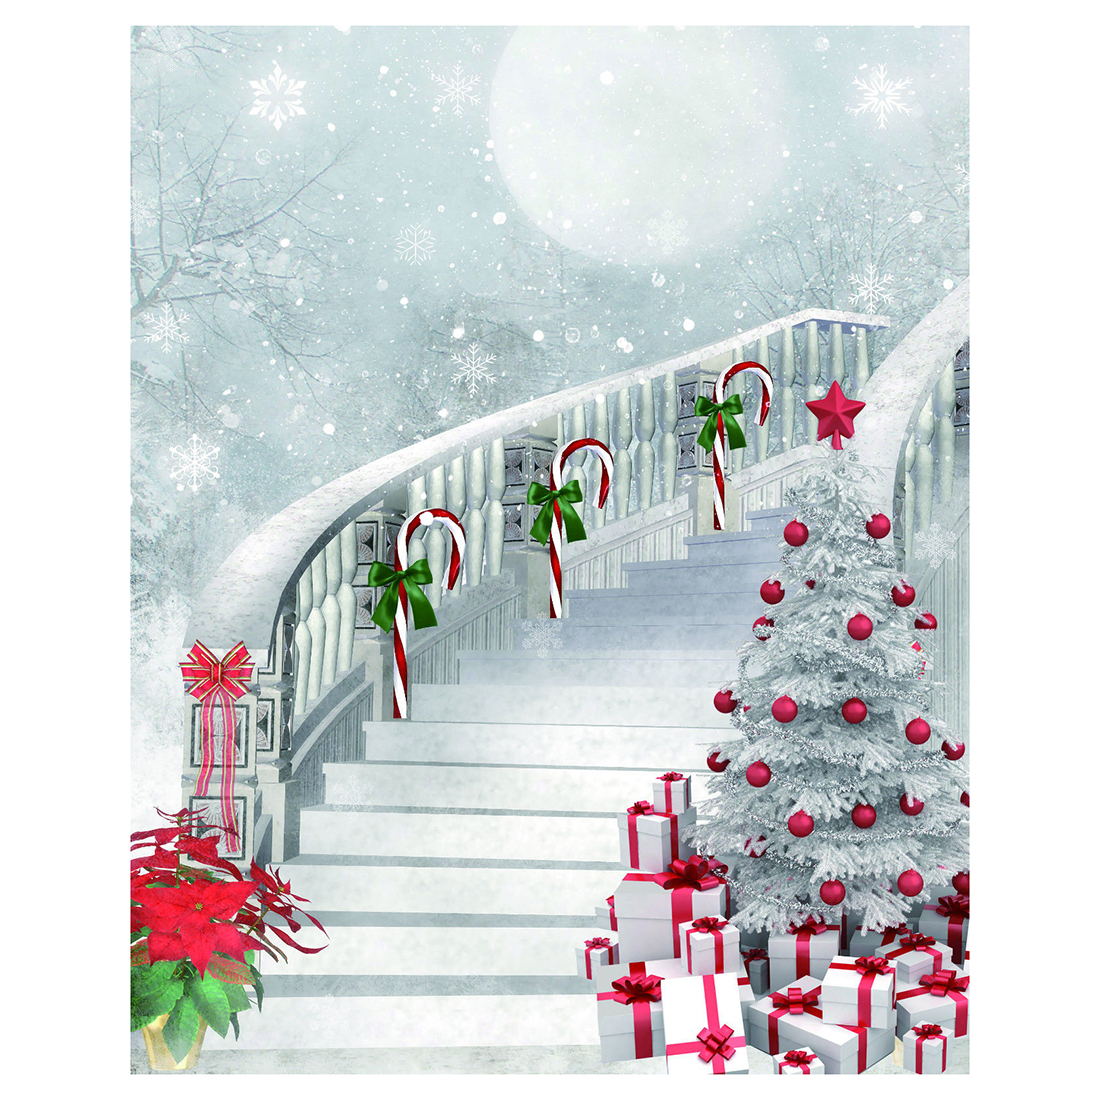 Thin Vinyl Studio Christmas Backdrop Photography Photo Background 5x7ft christmas background pictures vinyl tree wreath gift window child photocall fairy tale wonderland camera photo studio backdrop